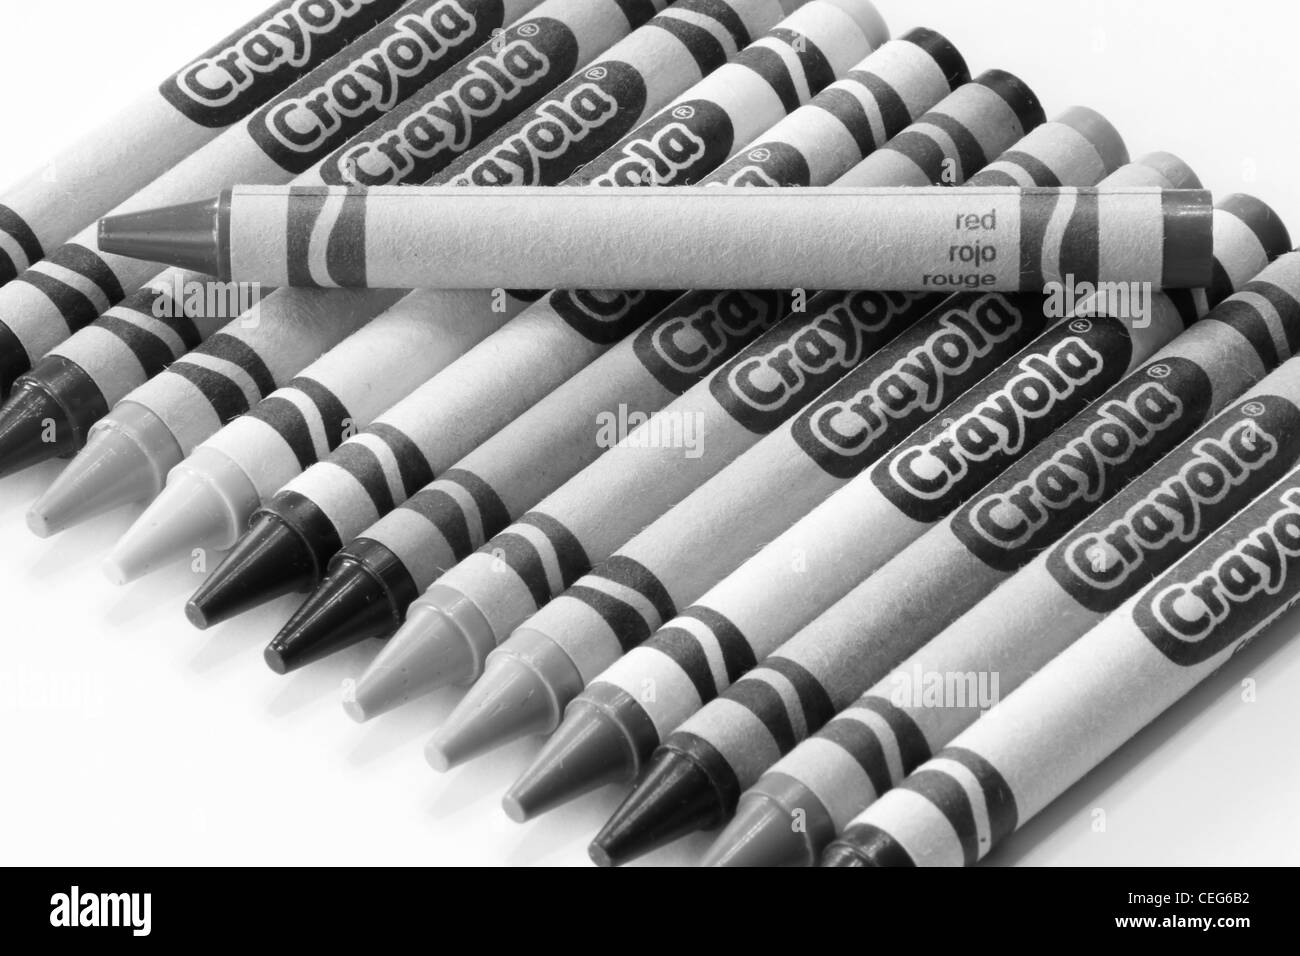 Red Crayon In Black And White Crayola Brand Crayons Stock